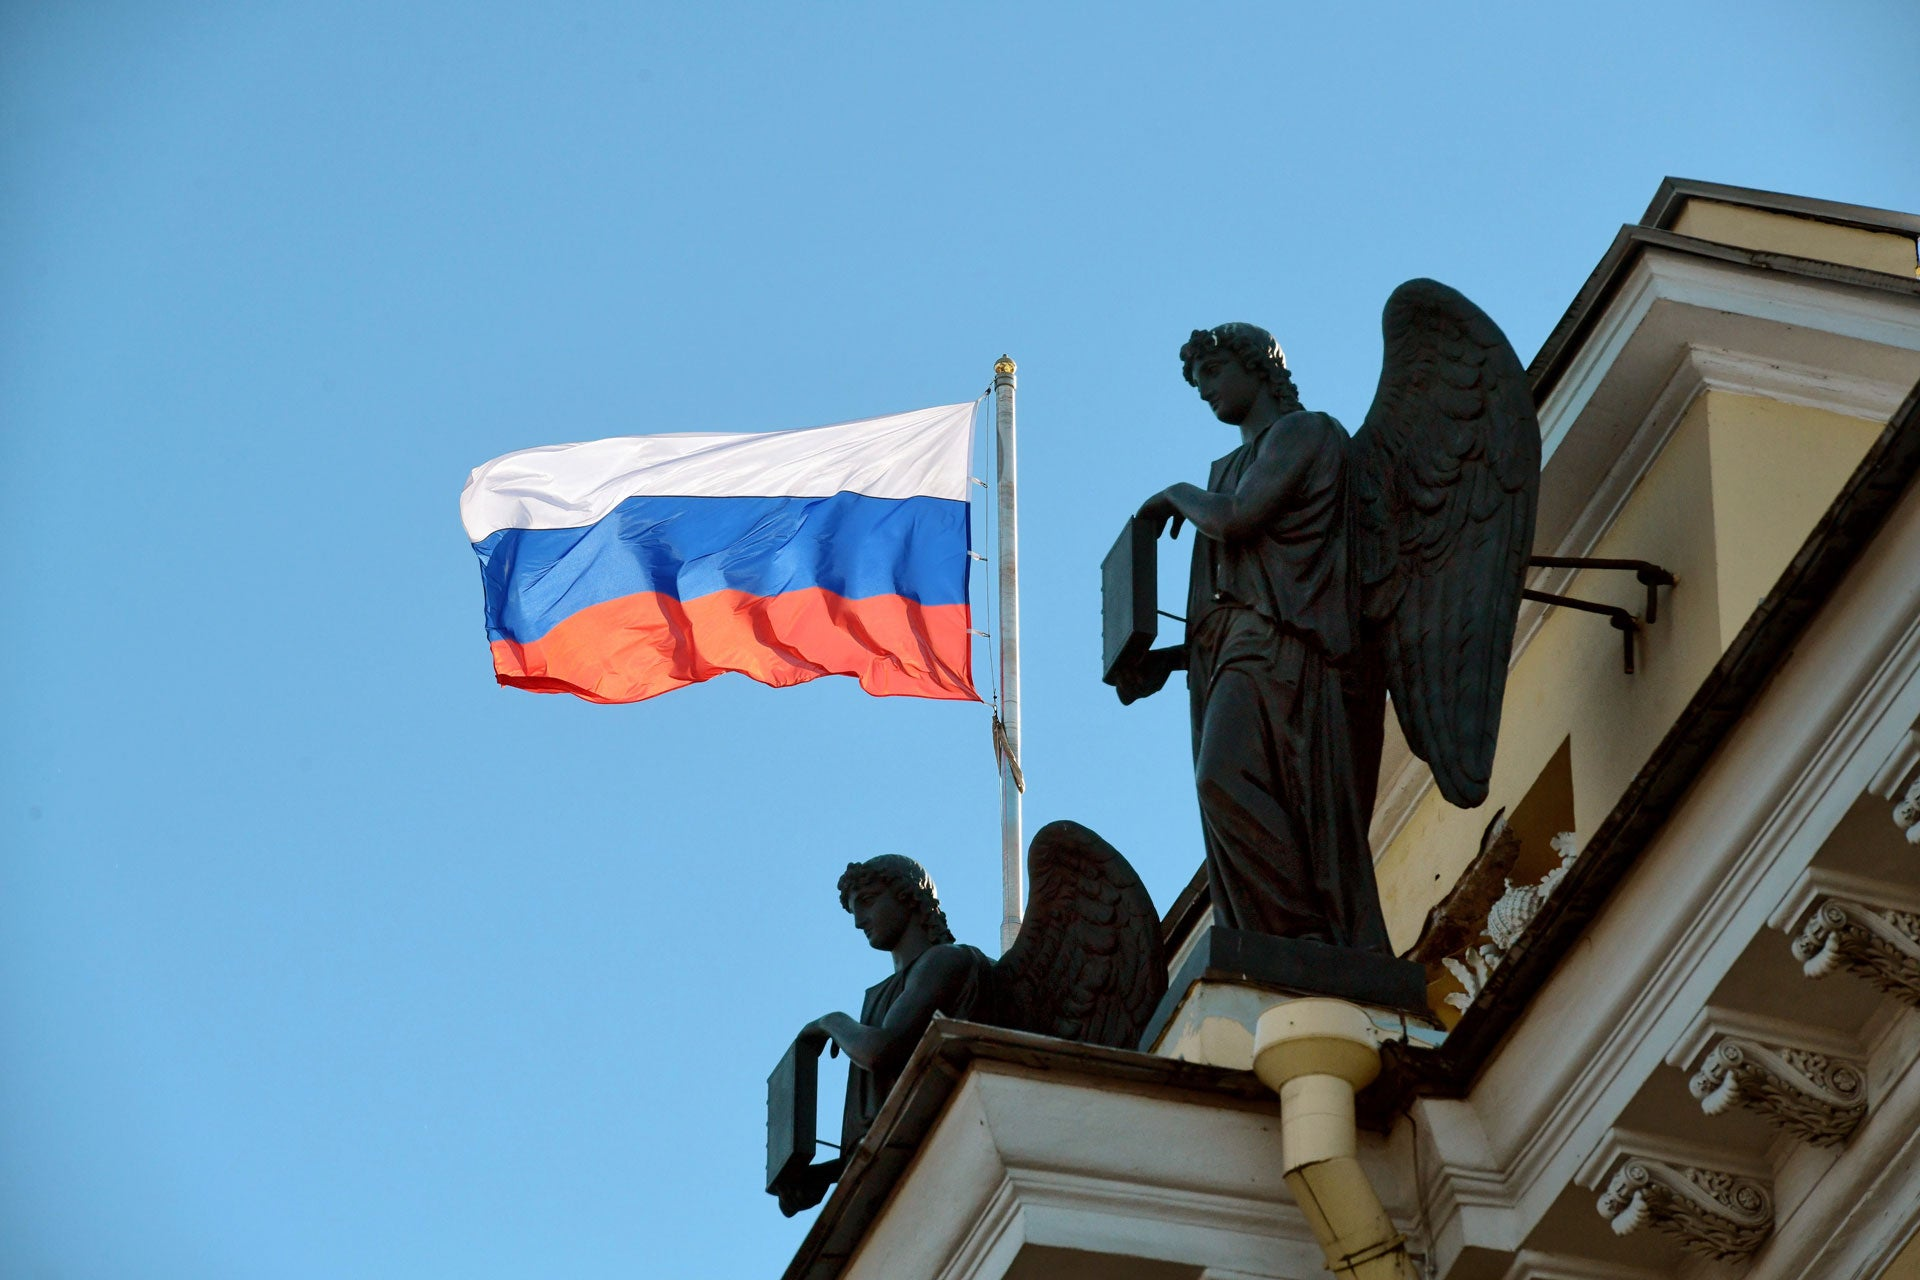 The Russian flag flies on a courthouse building in St. Petersburg, Russia, March 15 2020.